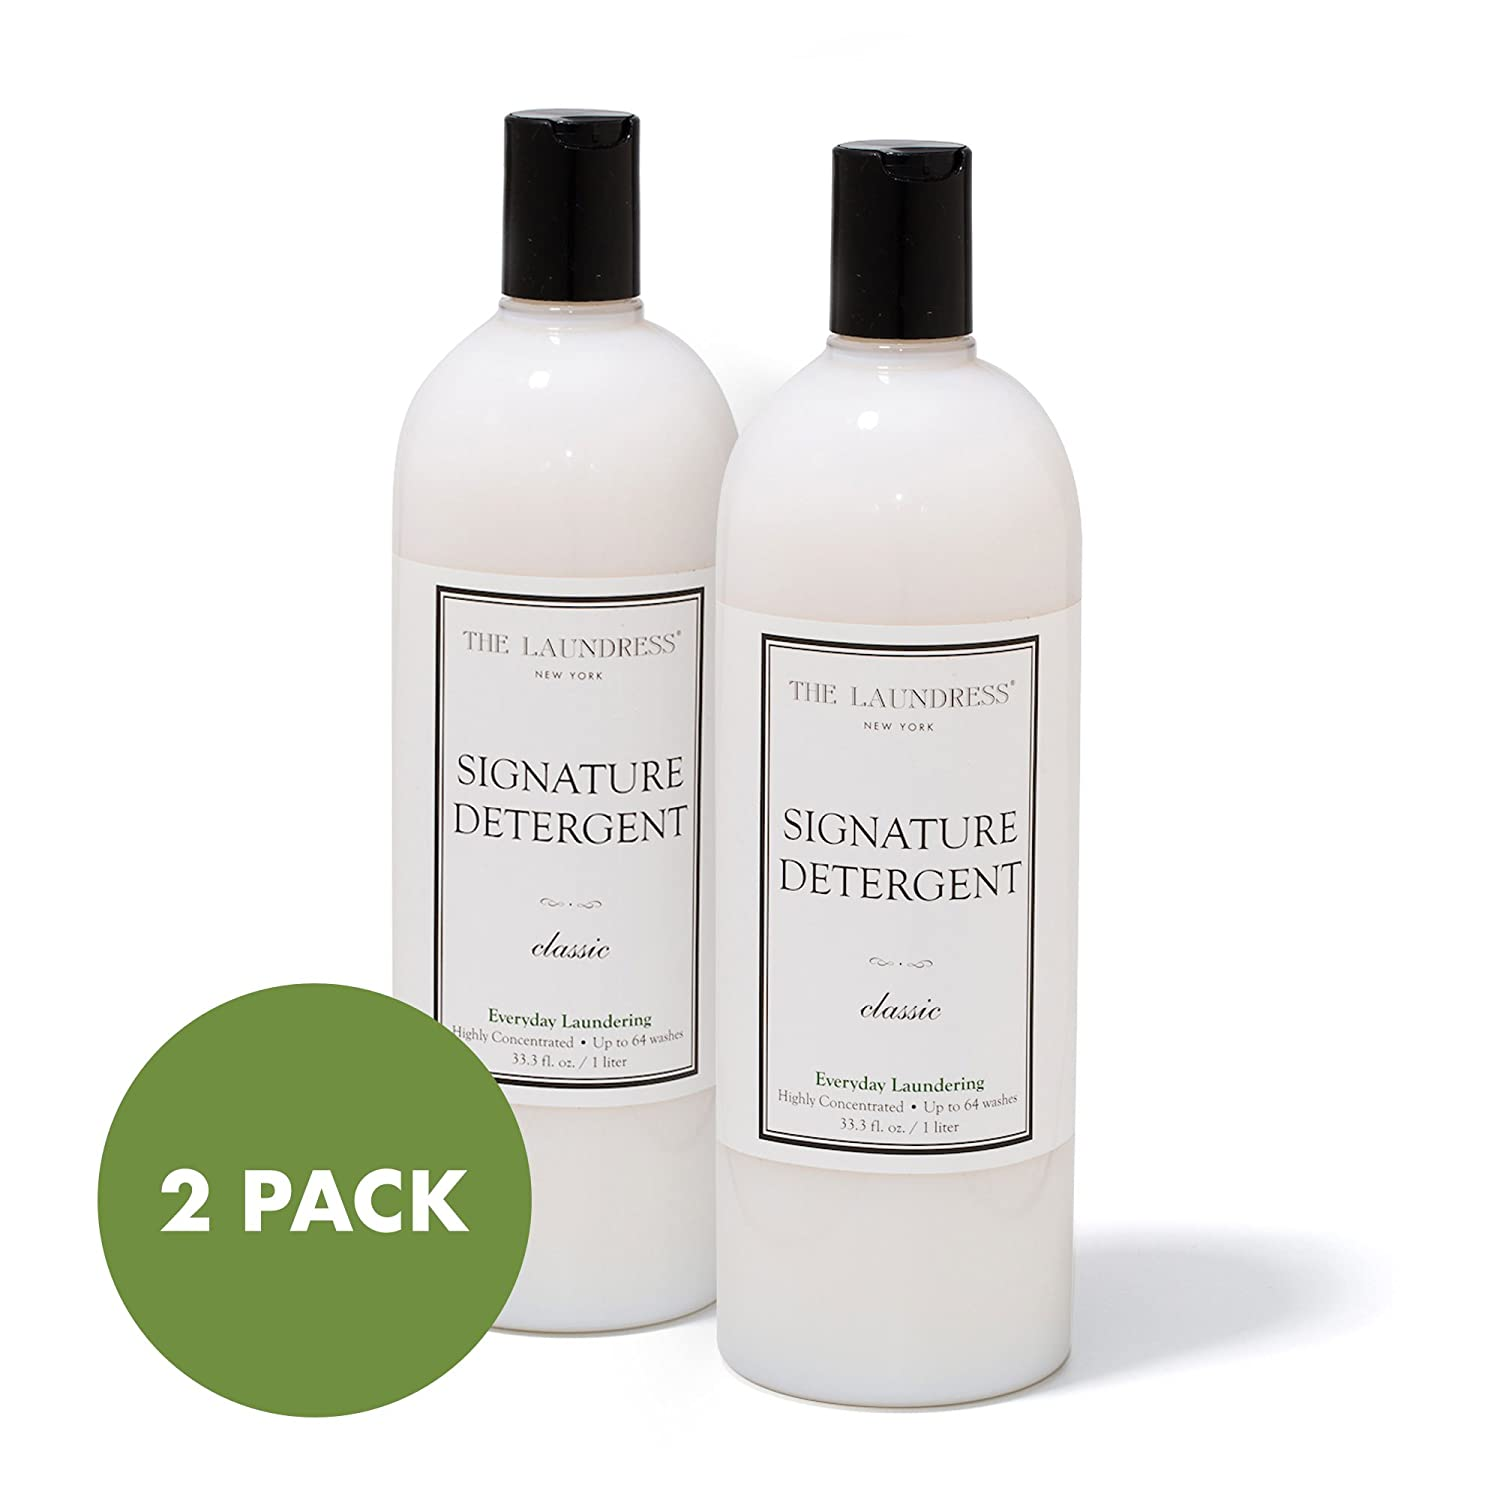 The Laundress Signature Detergent - 33.3 oz, Classic Scent, 2 Pack - All Natural, Plant Based, Eco-Friendly, Biodegradable & Hypoallergenic - Amazing Scent with Jasmine & Citrus Overtones - 128 loads